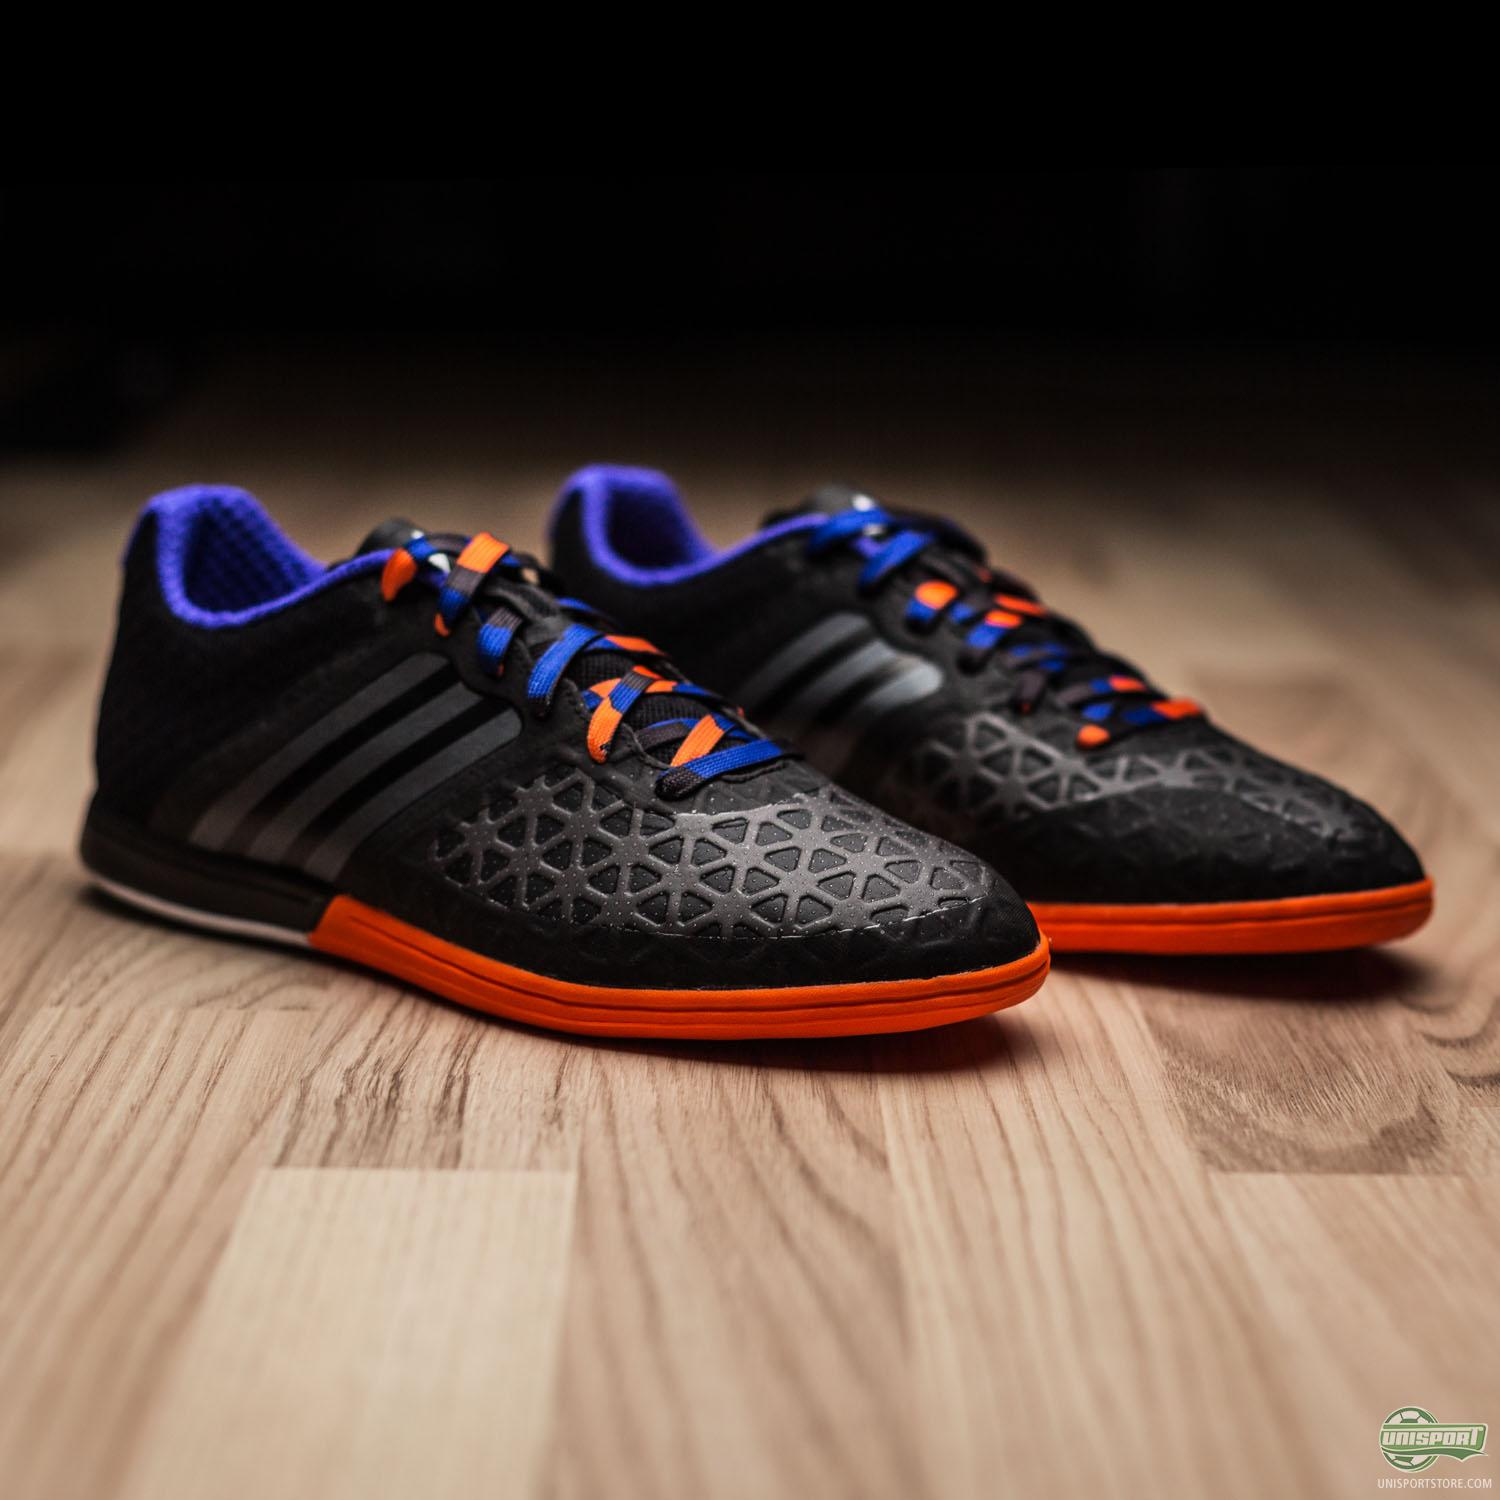 adidas Court, Cage and Street shoes